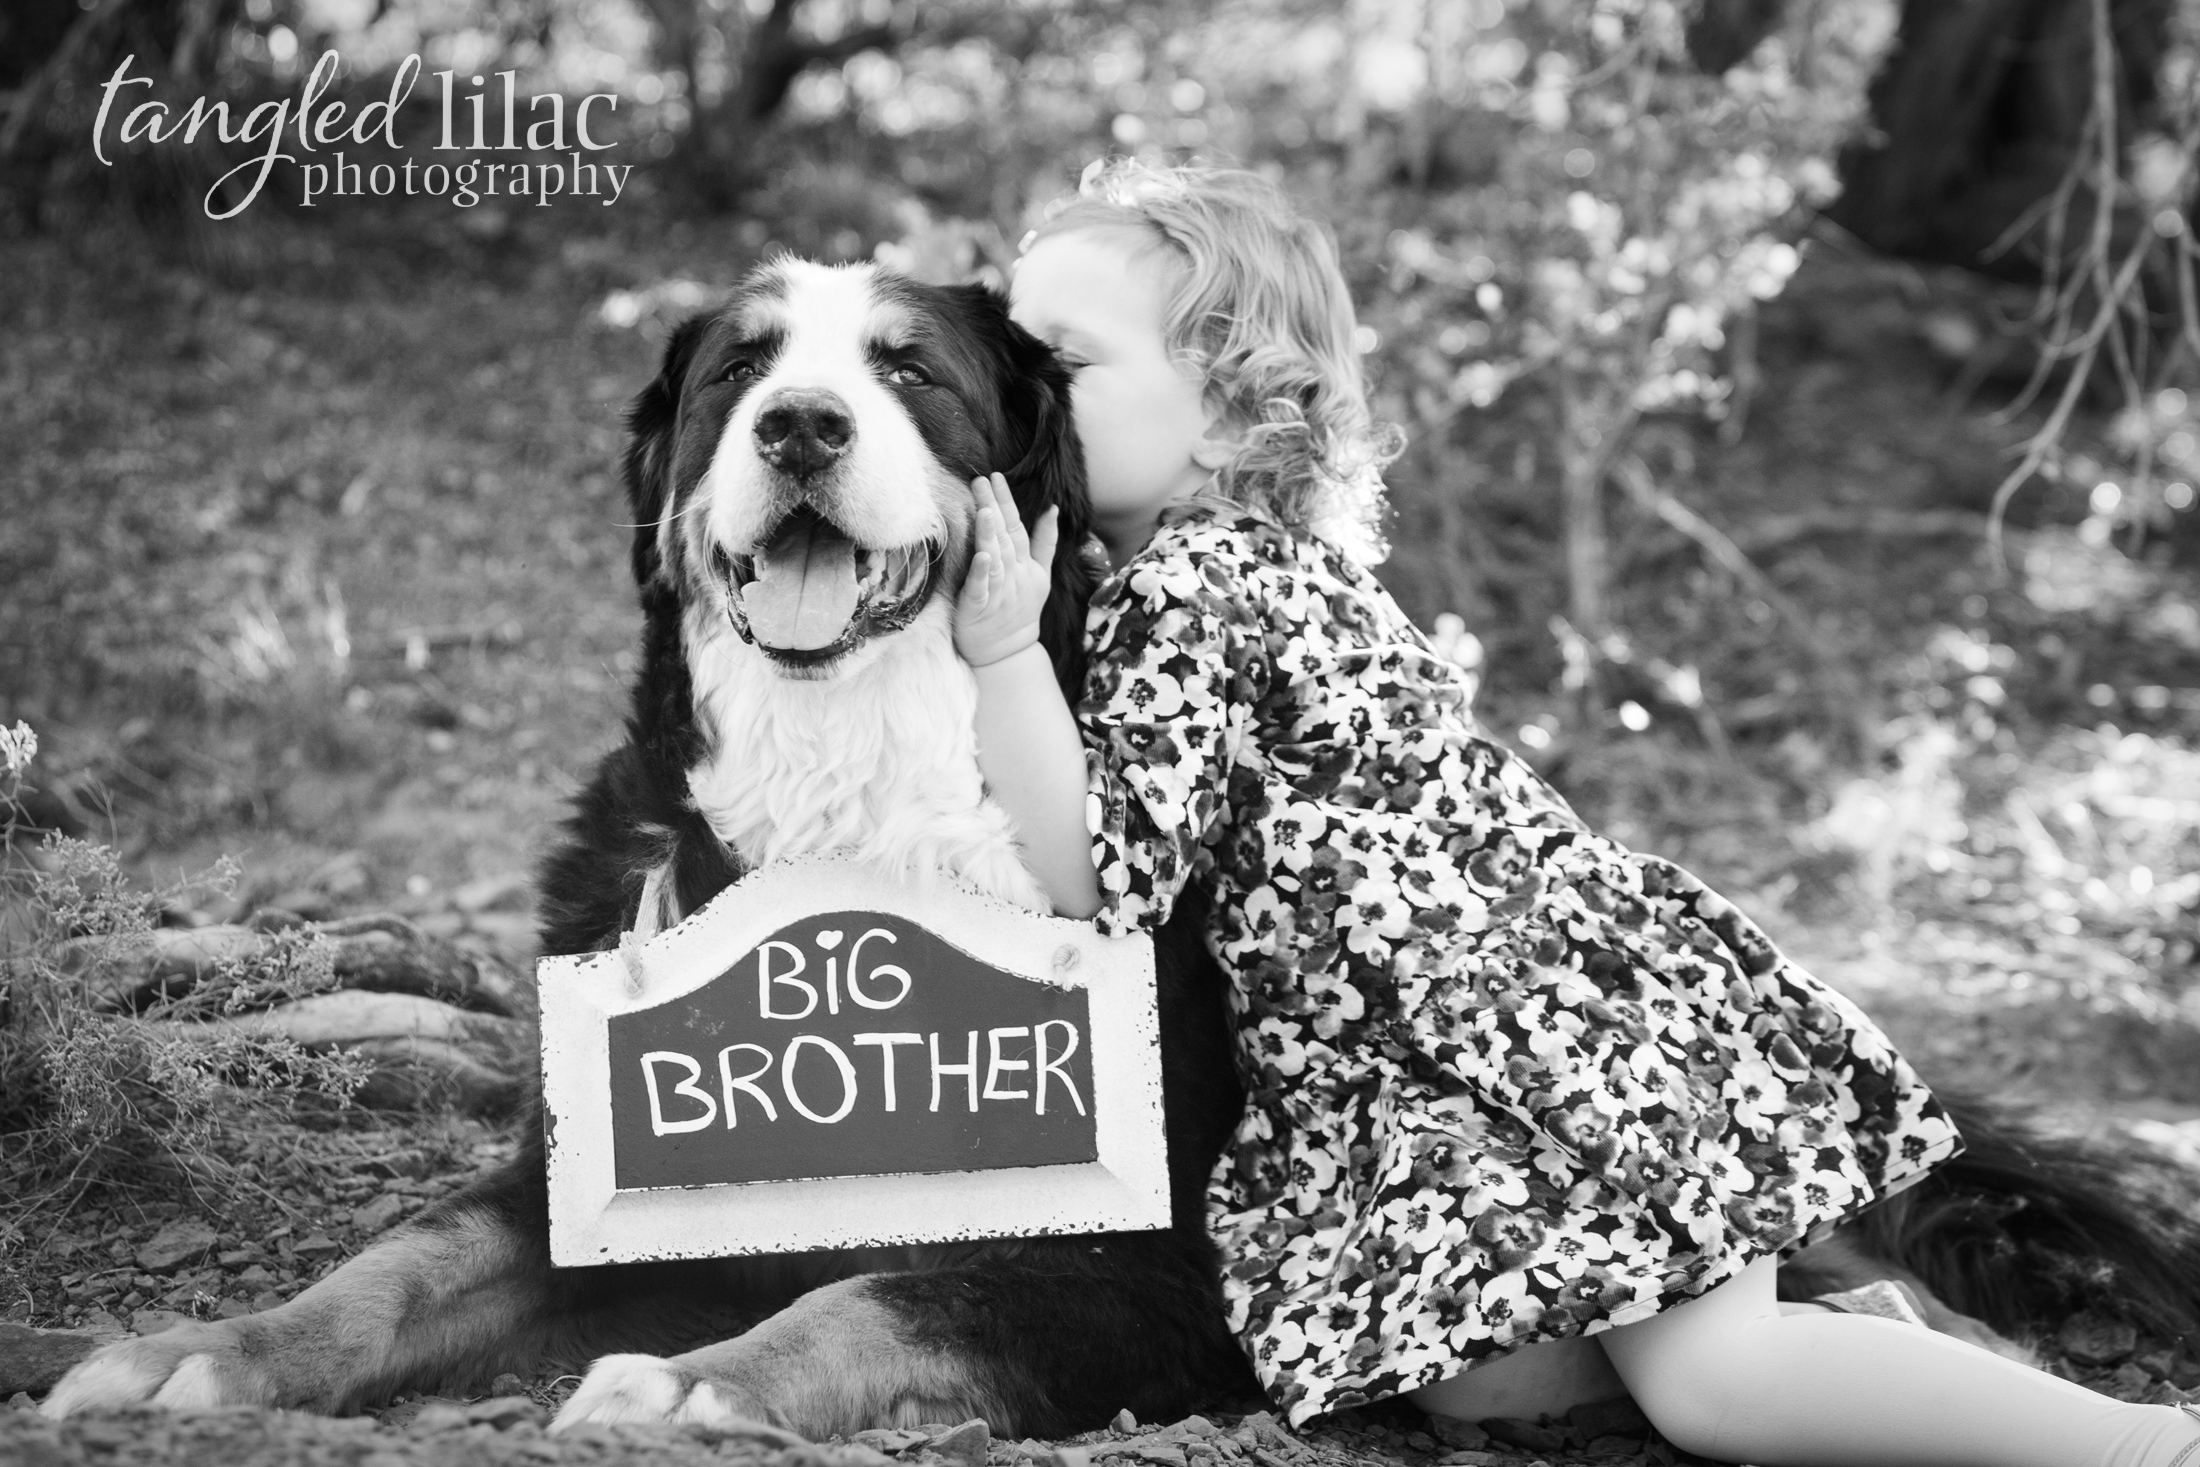 107-sedona-family-photographer-maternity-pet-dog-bernese-mountain-dog